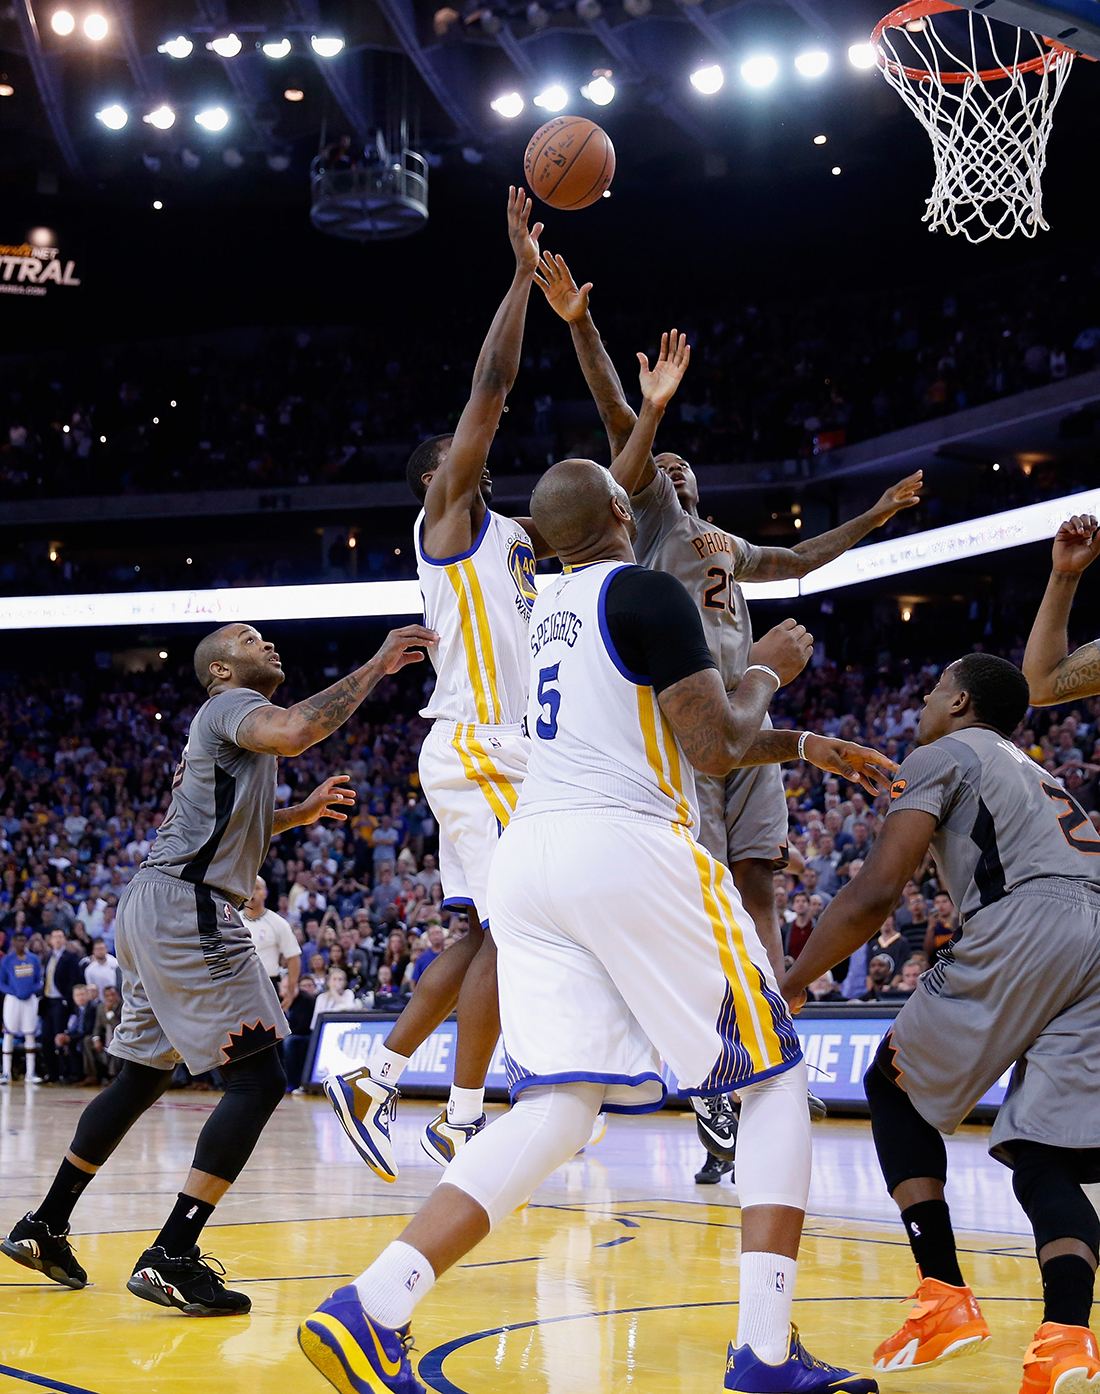 Harrison Barnes salva a los Warriors por viva basquet